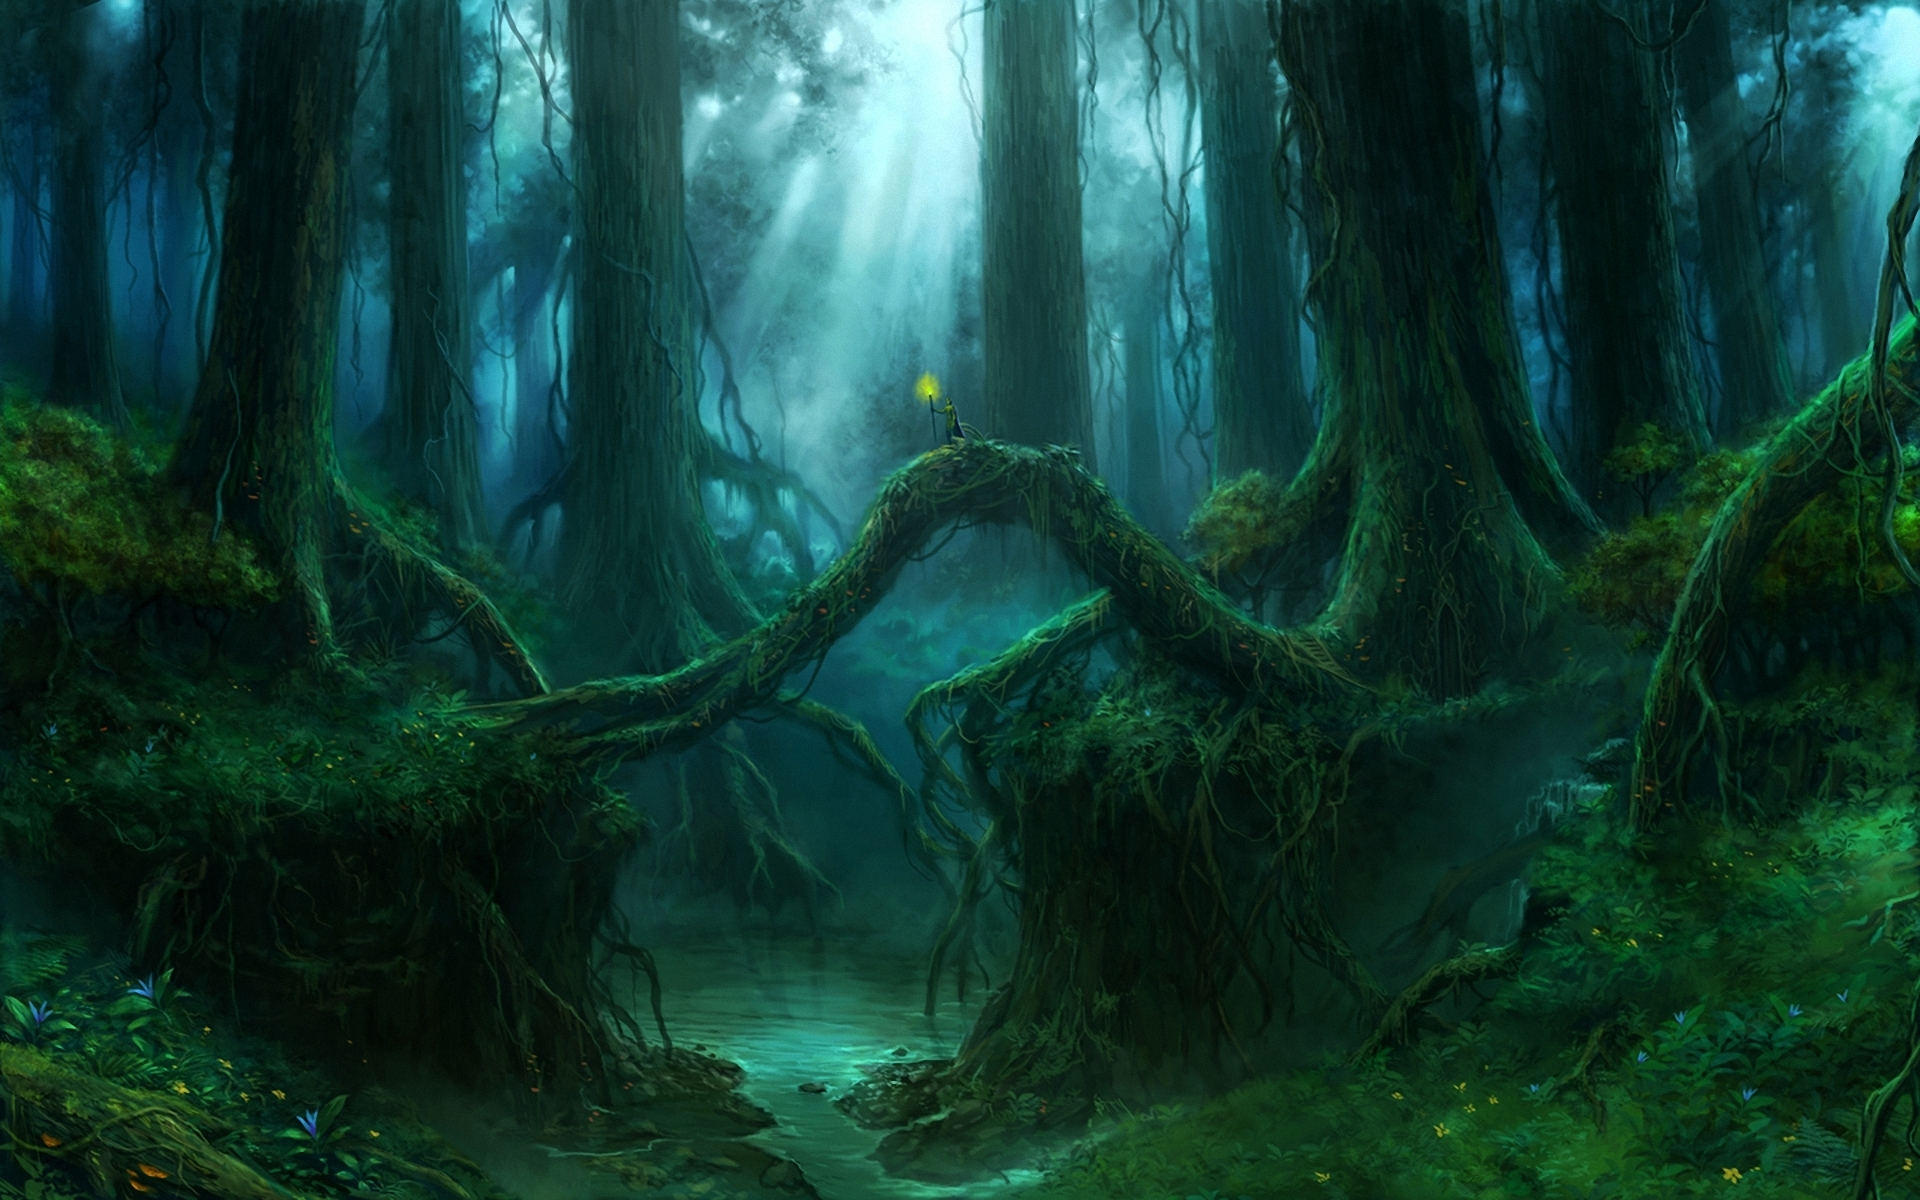 Gothic Forest Trees Fantasy river mood